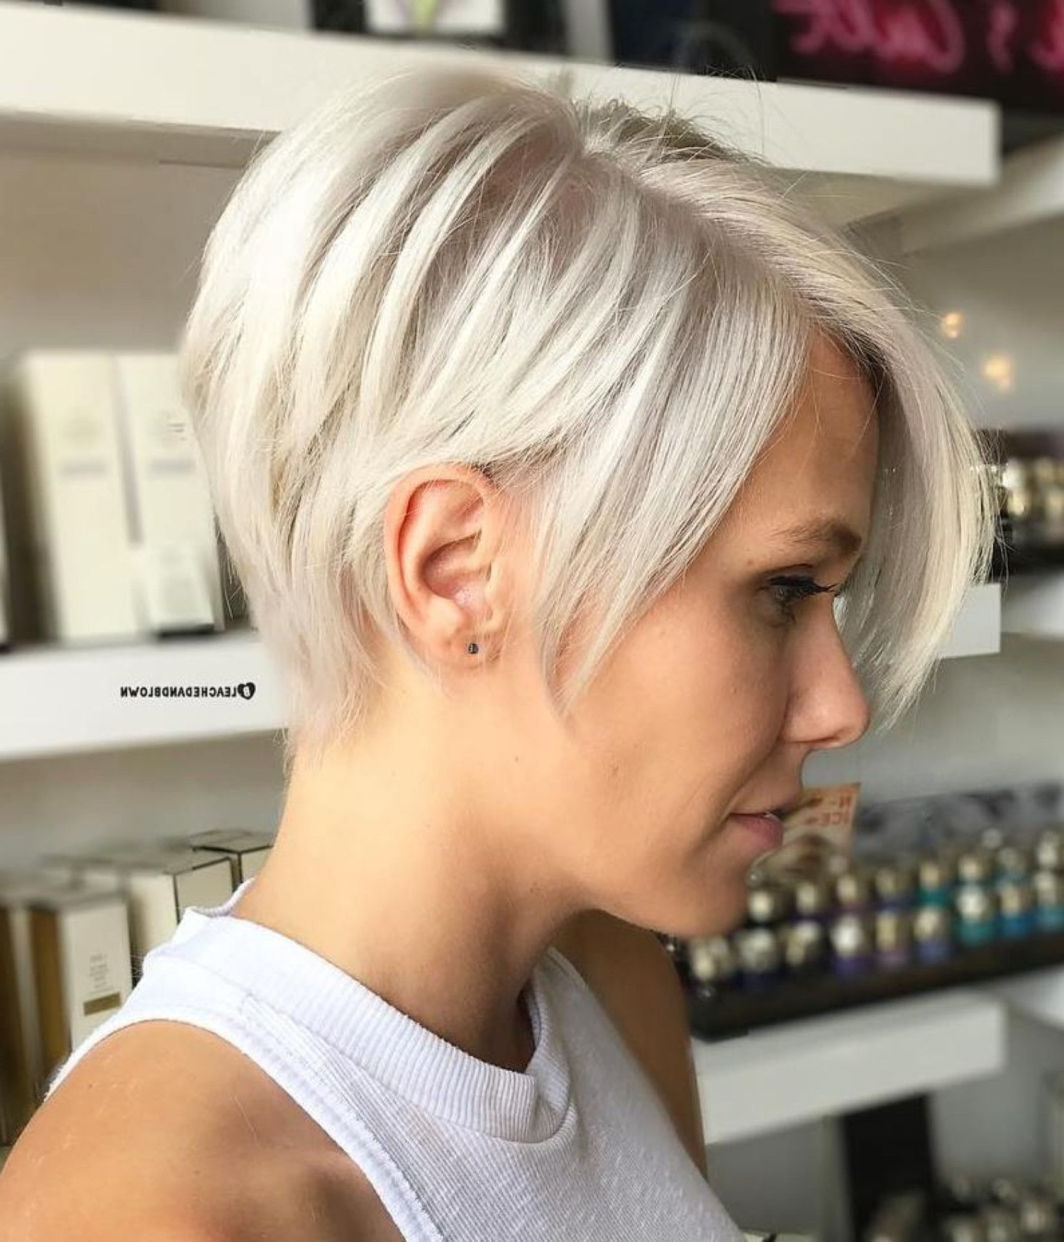 100 Mind Blowing Short Hairstyles For Fine Hair In 2018 | Beige Pertaining To Sunny Blonde Finely Chopped Pixie Haircuts (View 2 of 20)